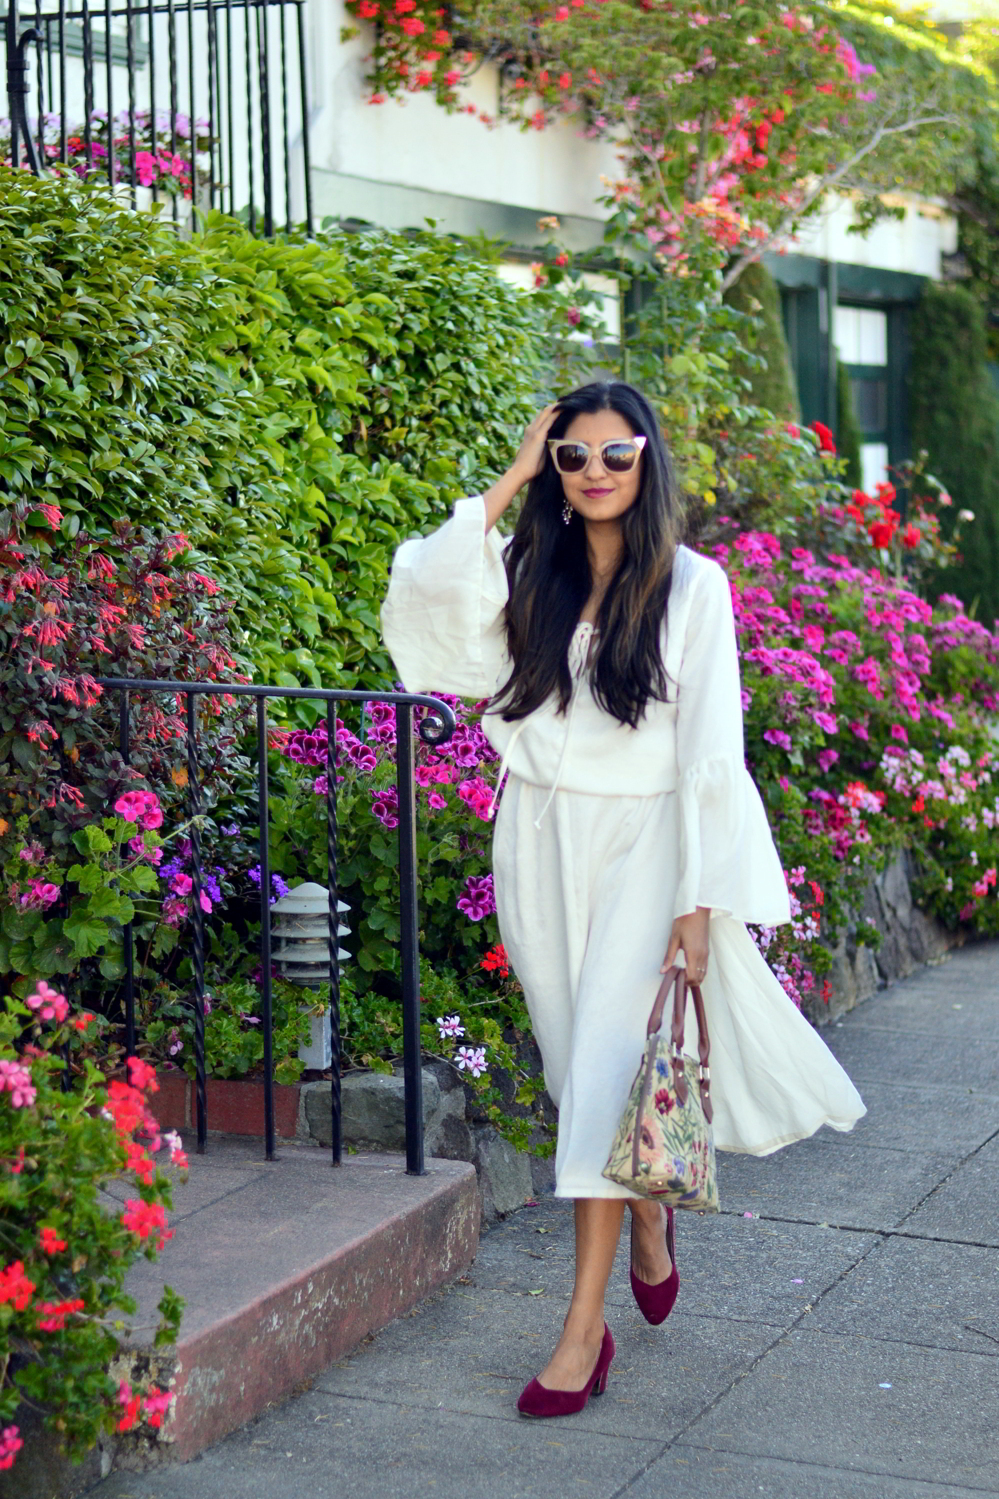 bell-sleeves-white-summer-style-blogger-outfit-dress-floral-bag 3